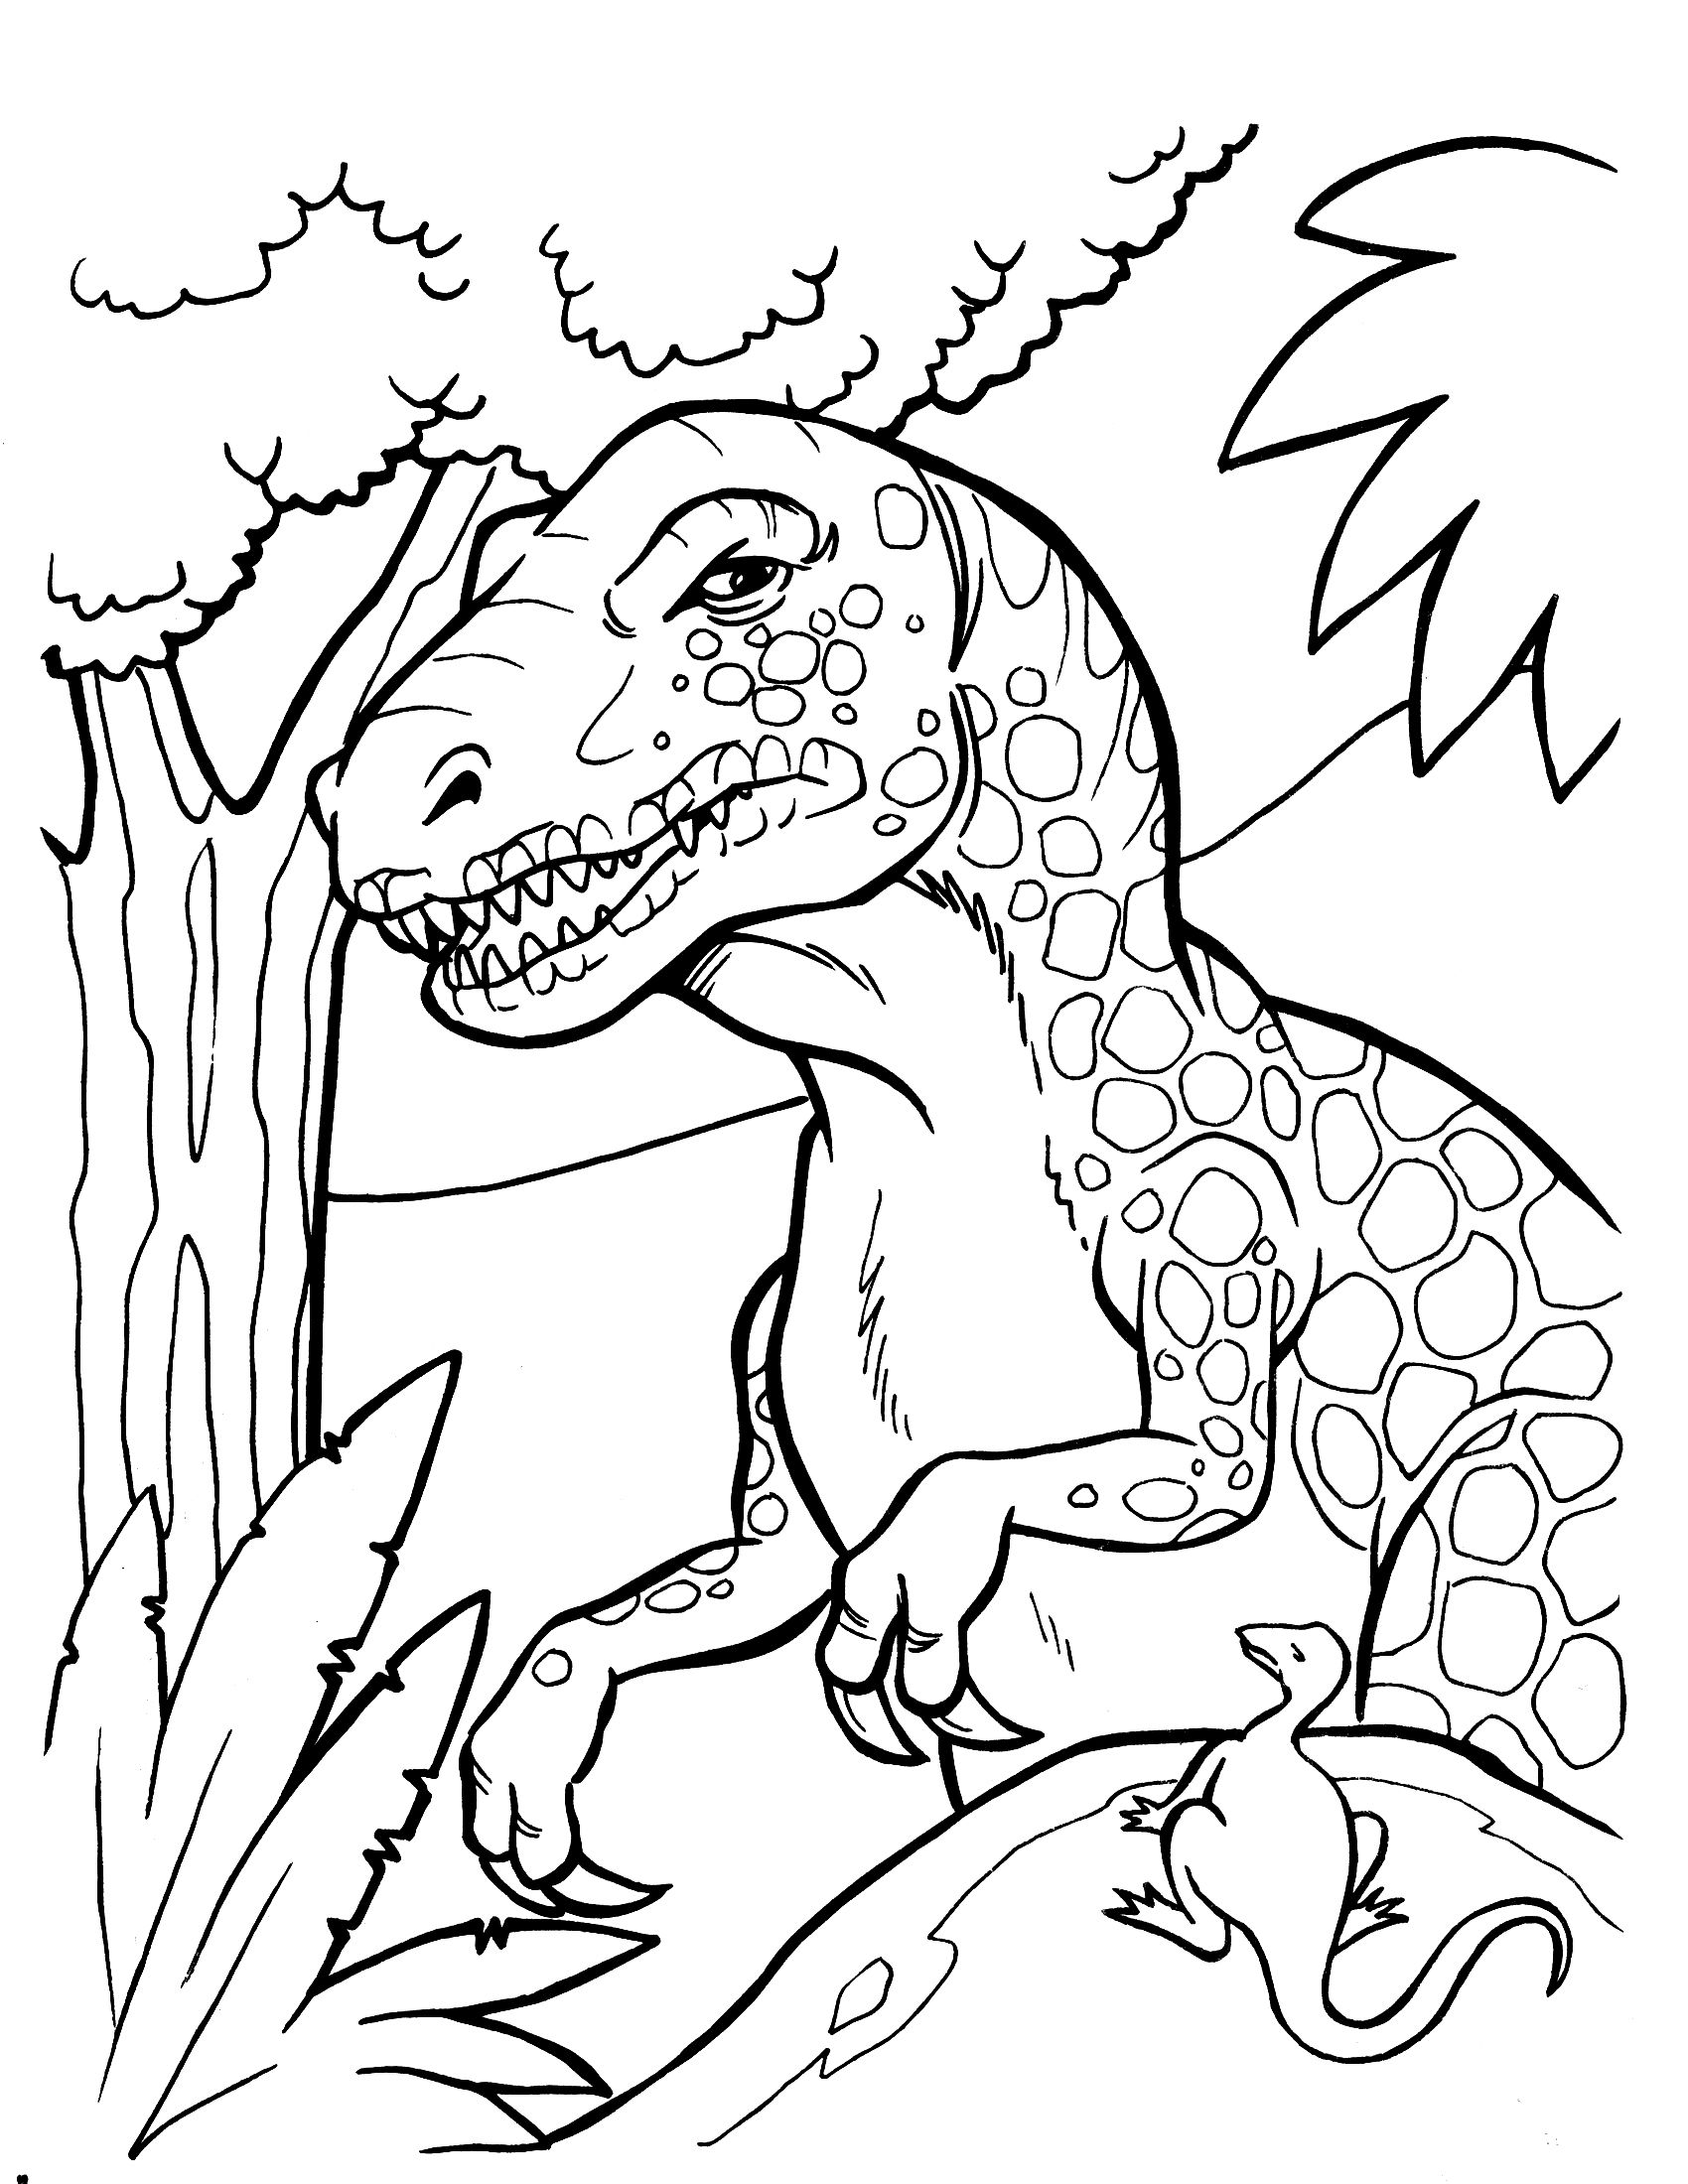 dinosaur printable coloring pages dinosaur coloring pages 360coloringpages | adult coloring  dinosaur printable coloring pages